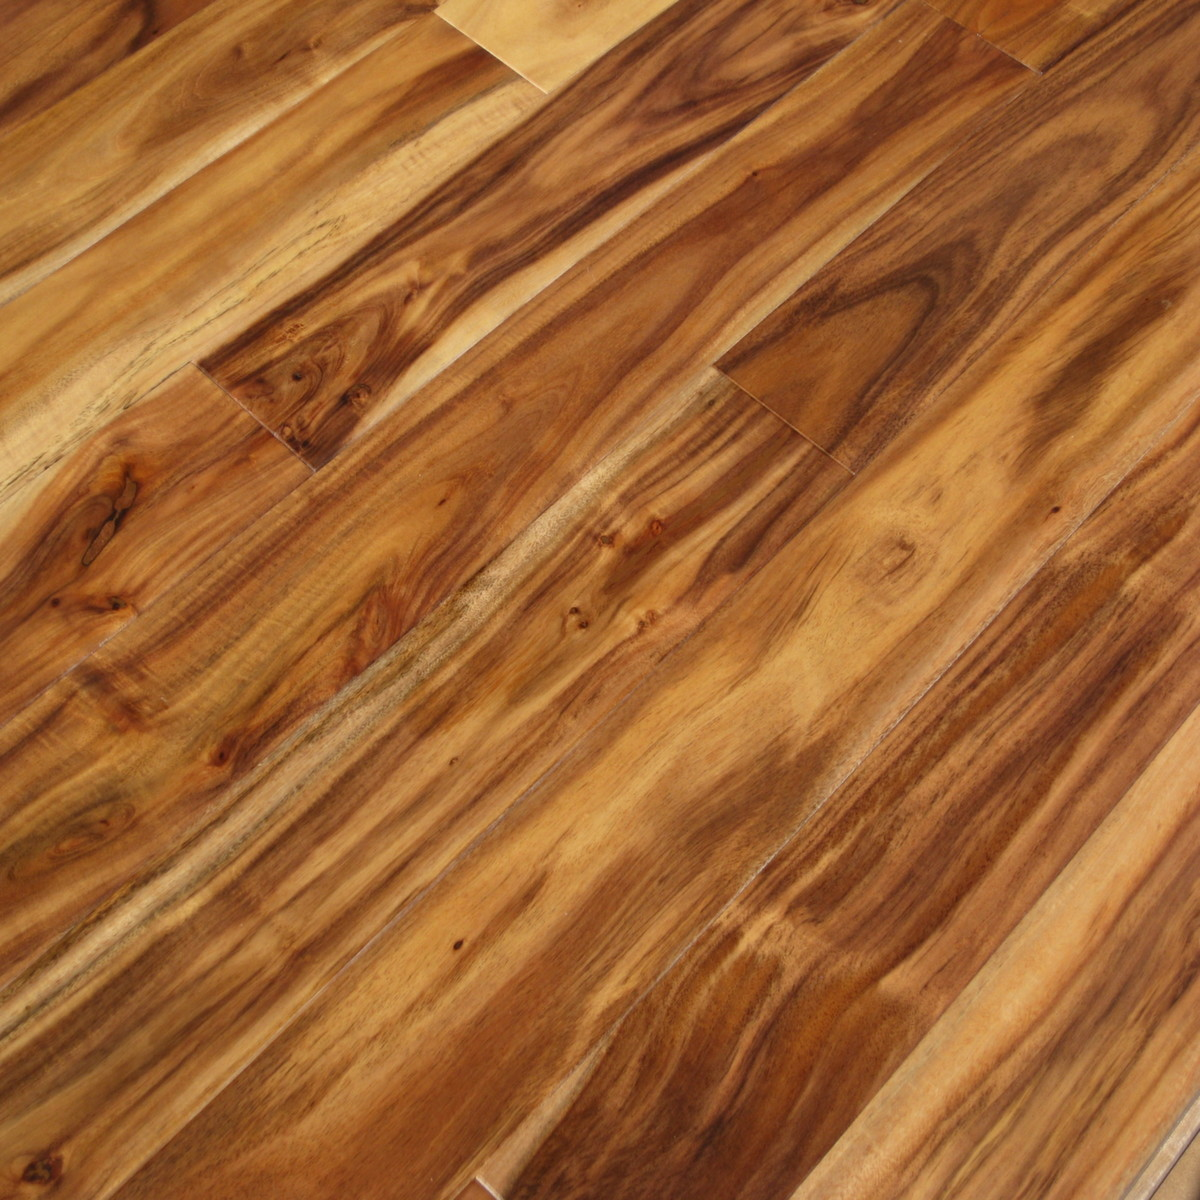 Acacia natural hand scraped hardwood flooring unique for Wood flooring natural